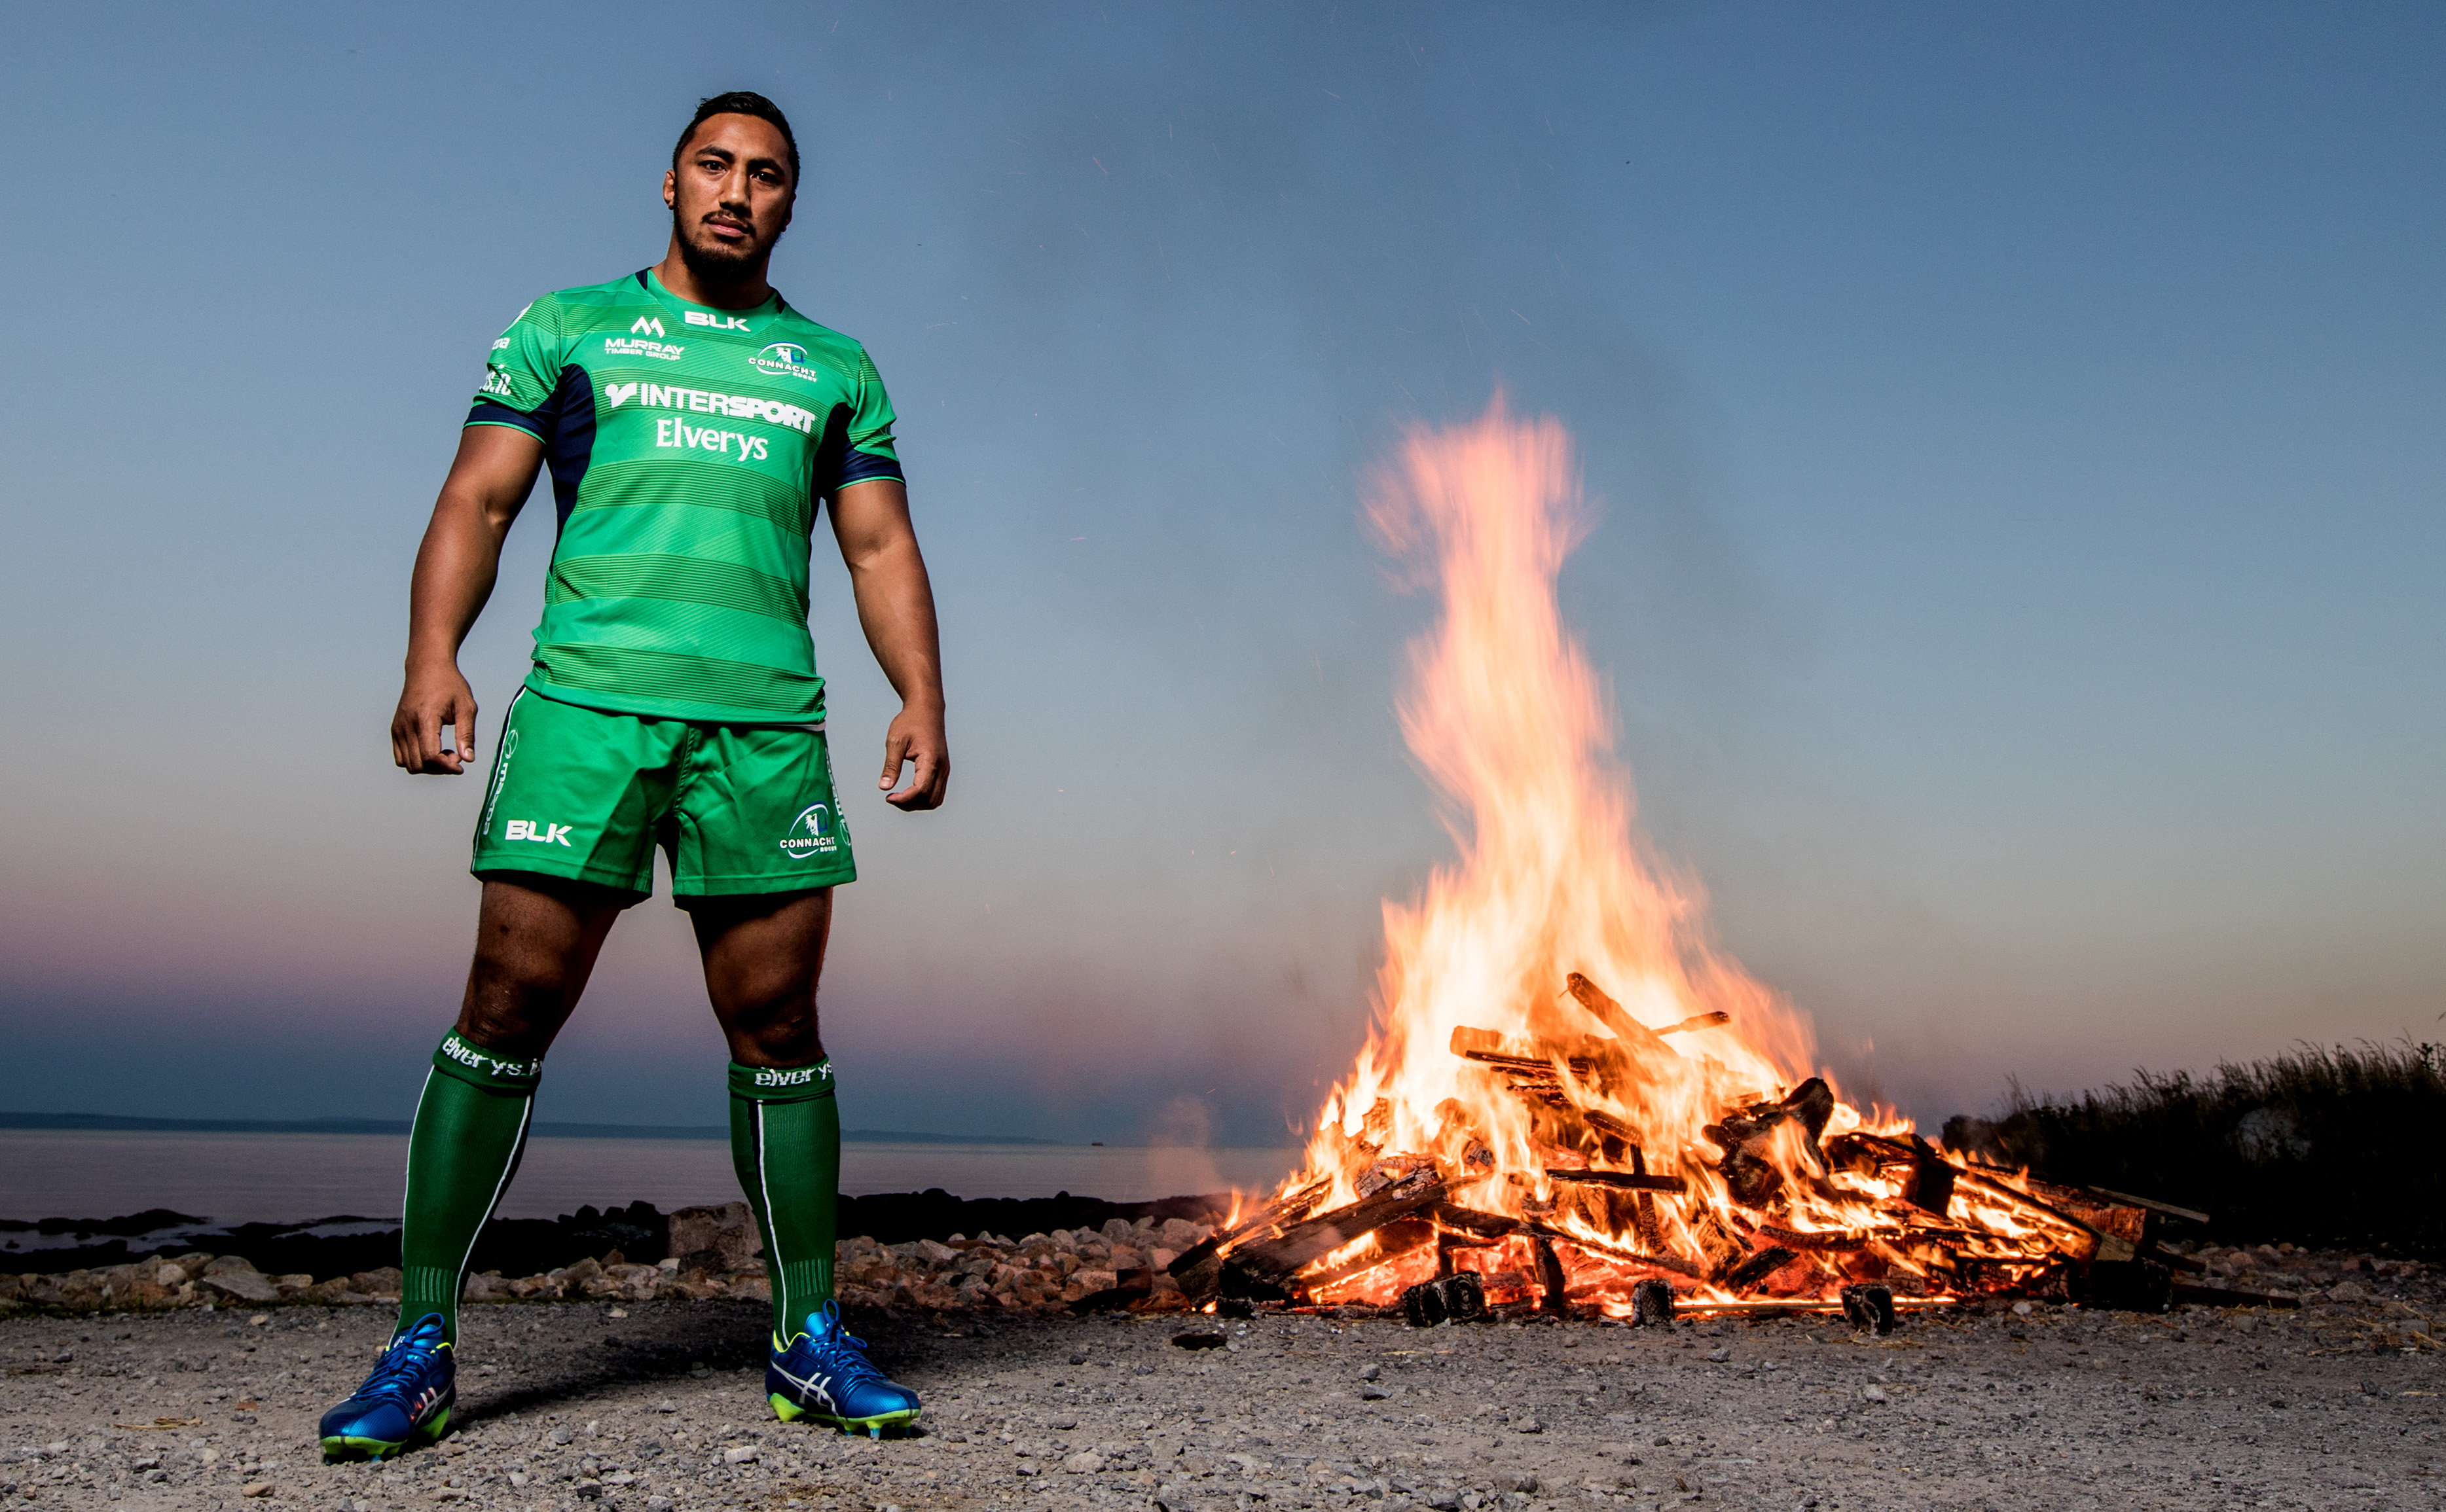 REPRO FREE***PRESS RELEASE NO REPRODUCTION FEE*** Launch Of The 2016/17 Connacht Rugby Home Jersey, Galway 16/8/2016 Bundee Aki, John Muldoon, and Tiernan O'Halloran launch the 2016/17 Connacht Rugby home jersey in conjunction with new title sponsor and official retail partner Elverys Intersport. For exclusive content and to see how Elverys Intersport welcome home Connacht Rugby, visit www.elverys.ie or follow @Elverys on Twitter and Facebook at facebook.com/ElverysSports Pictured today Bundee Aki Mandatory Credit ©INPHO/James Crombie